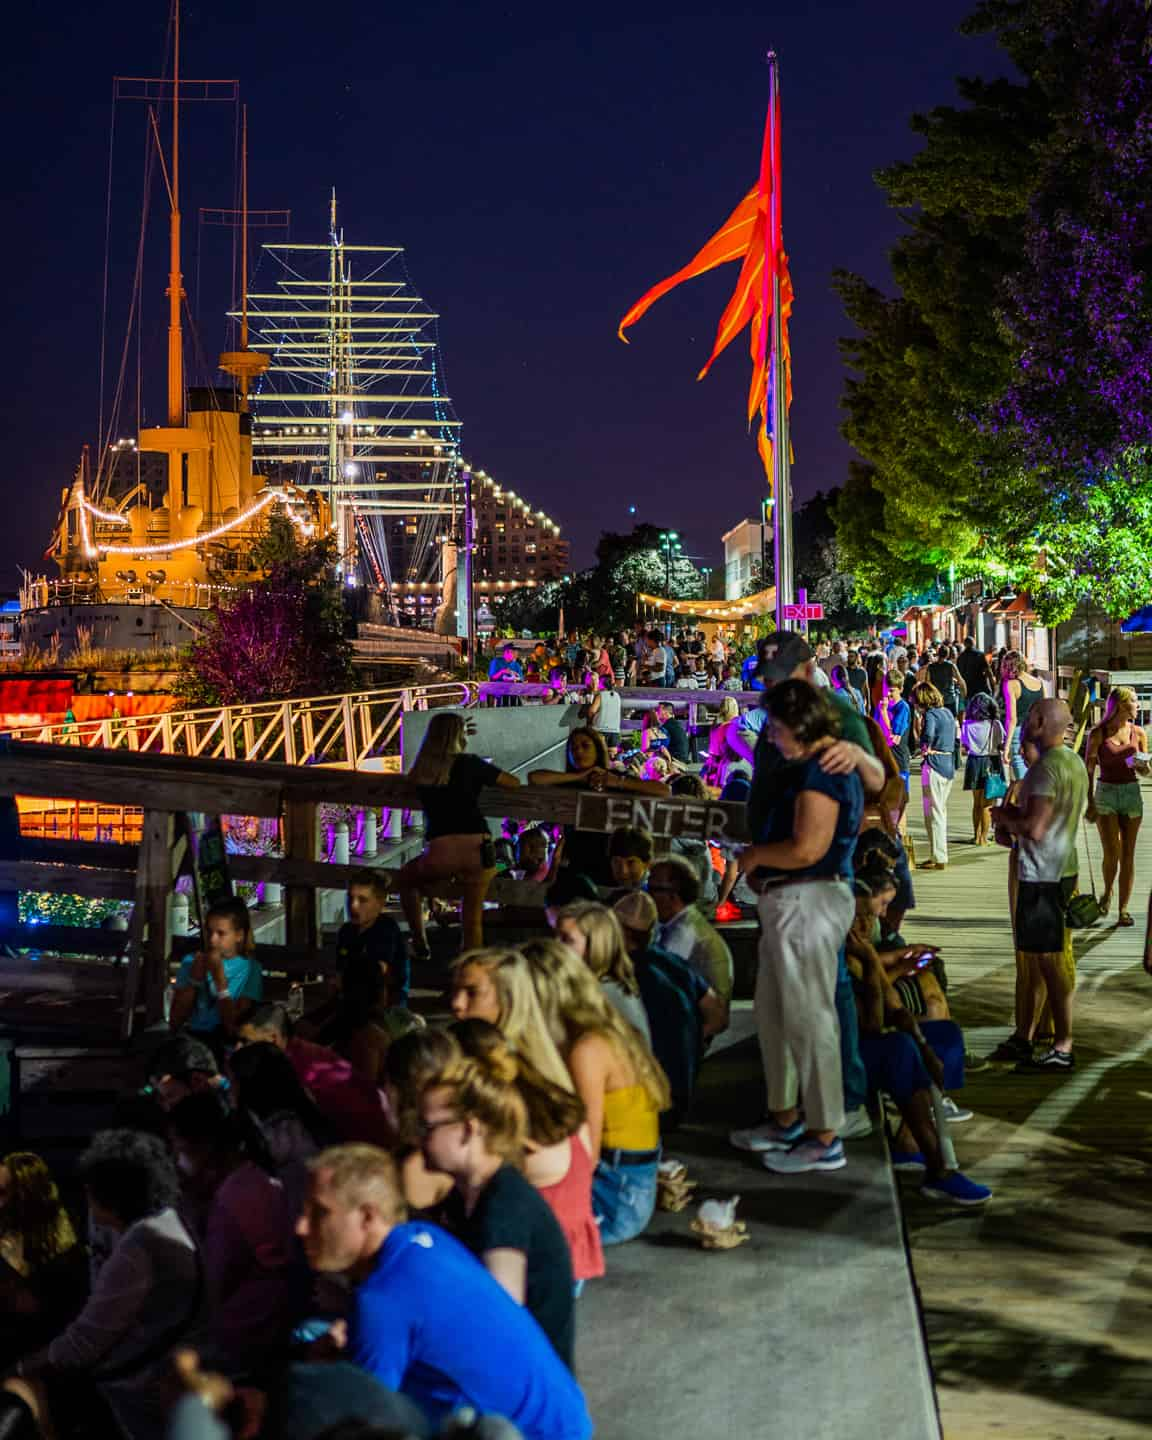 Photo of Philadelphia Landmark - Spruce Street Harbor Park